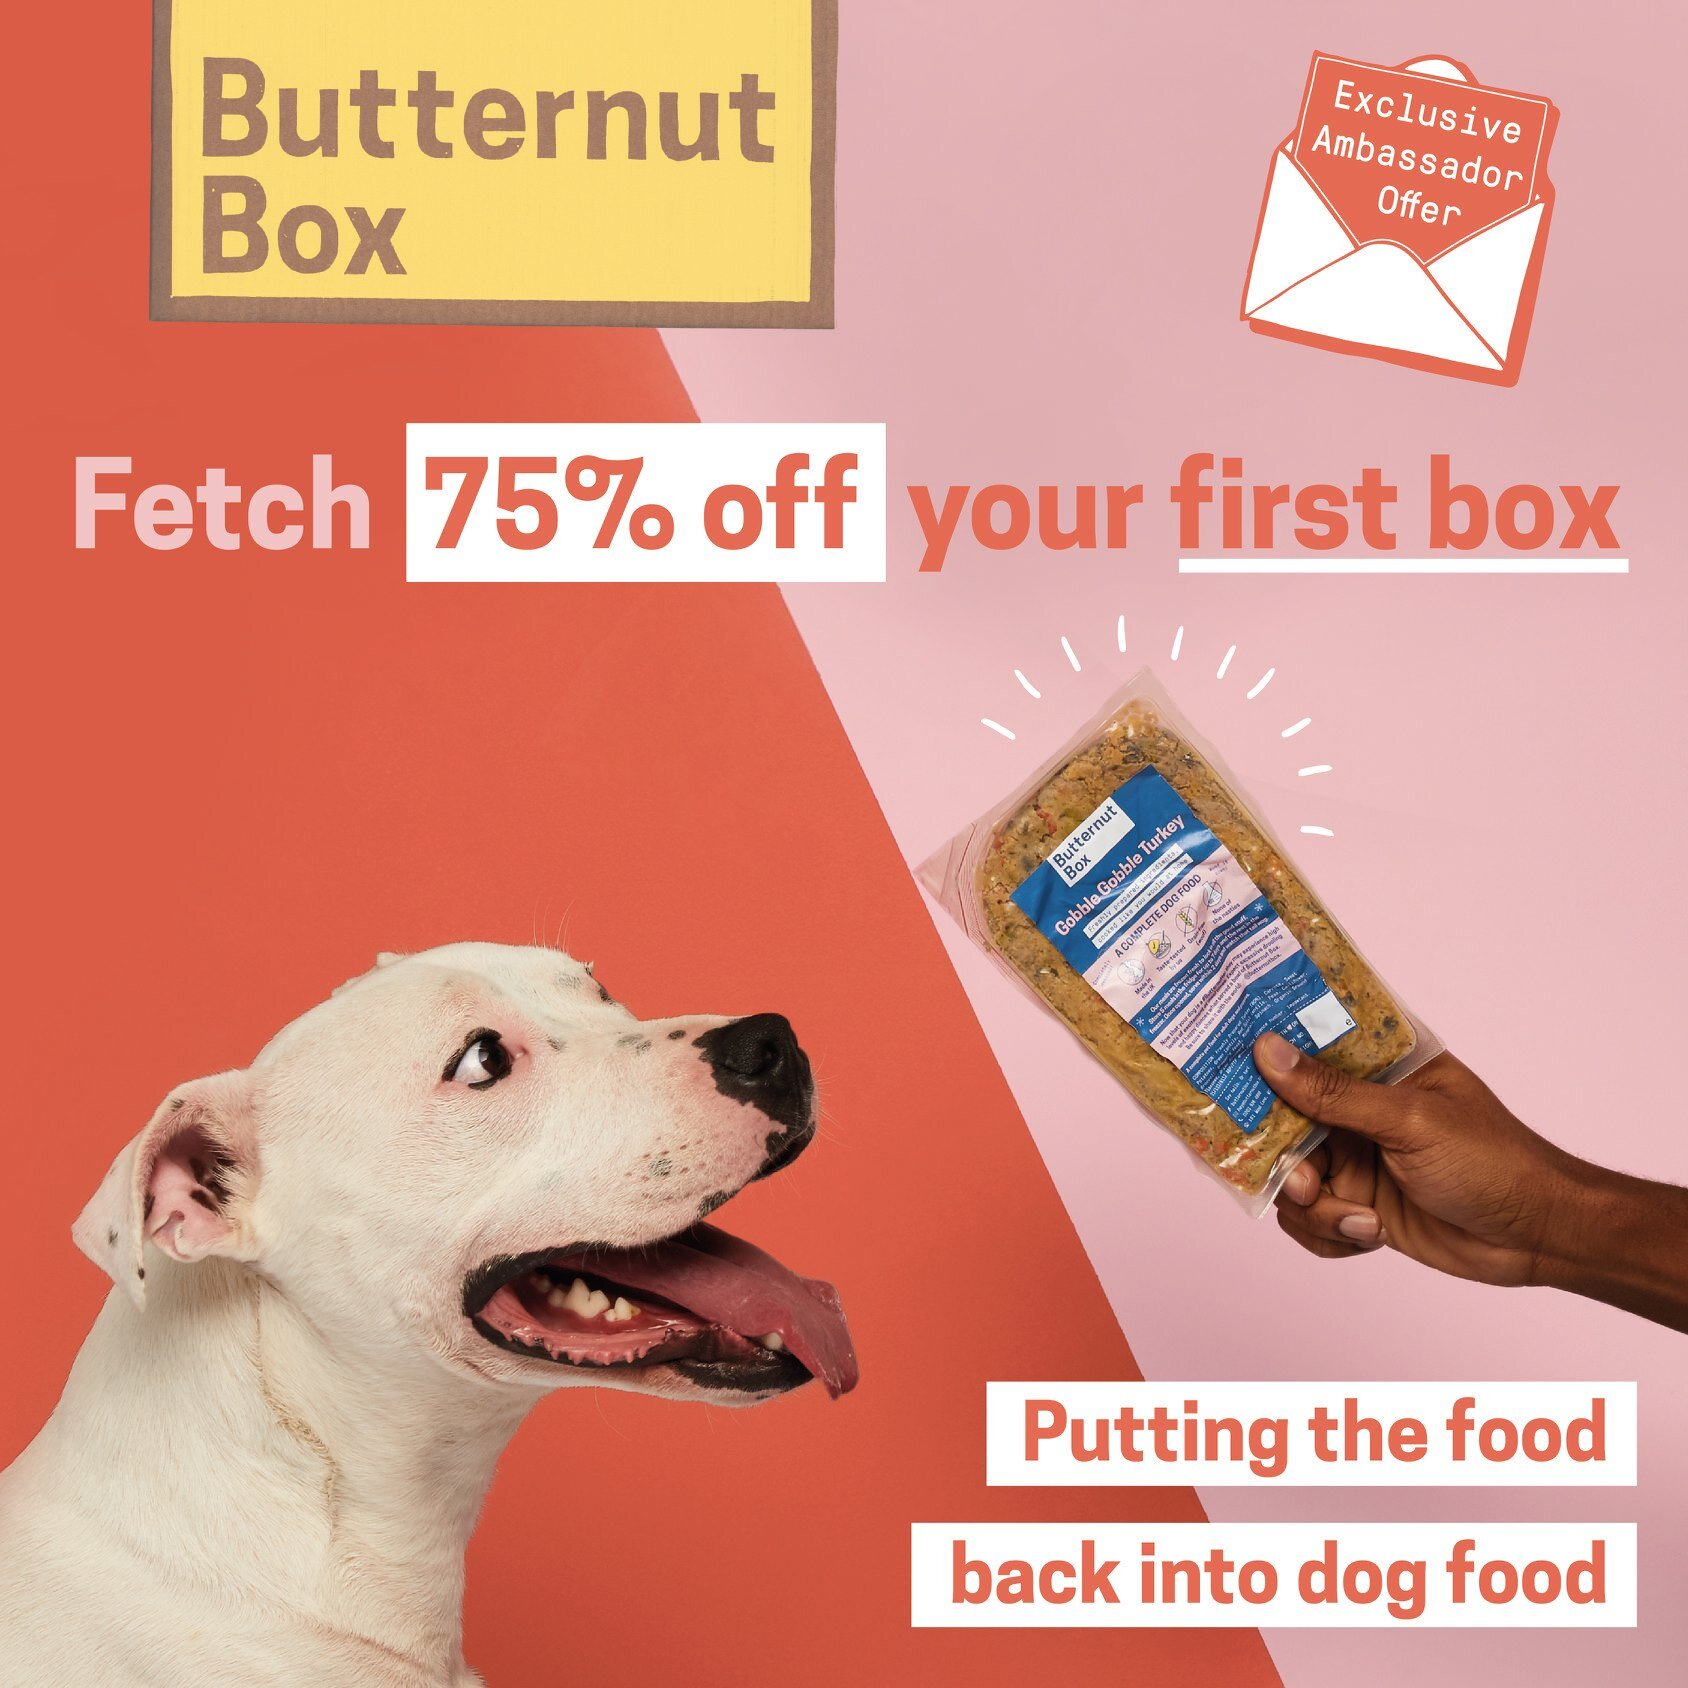 Get 75% off your first box -